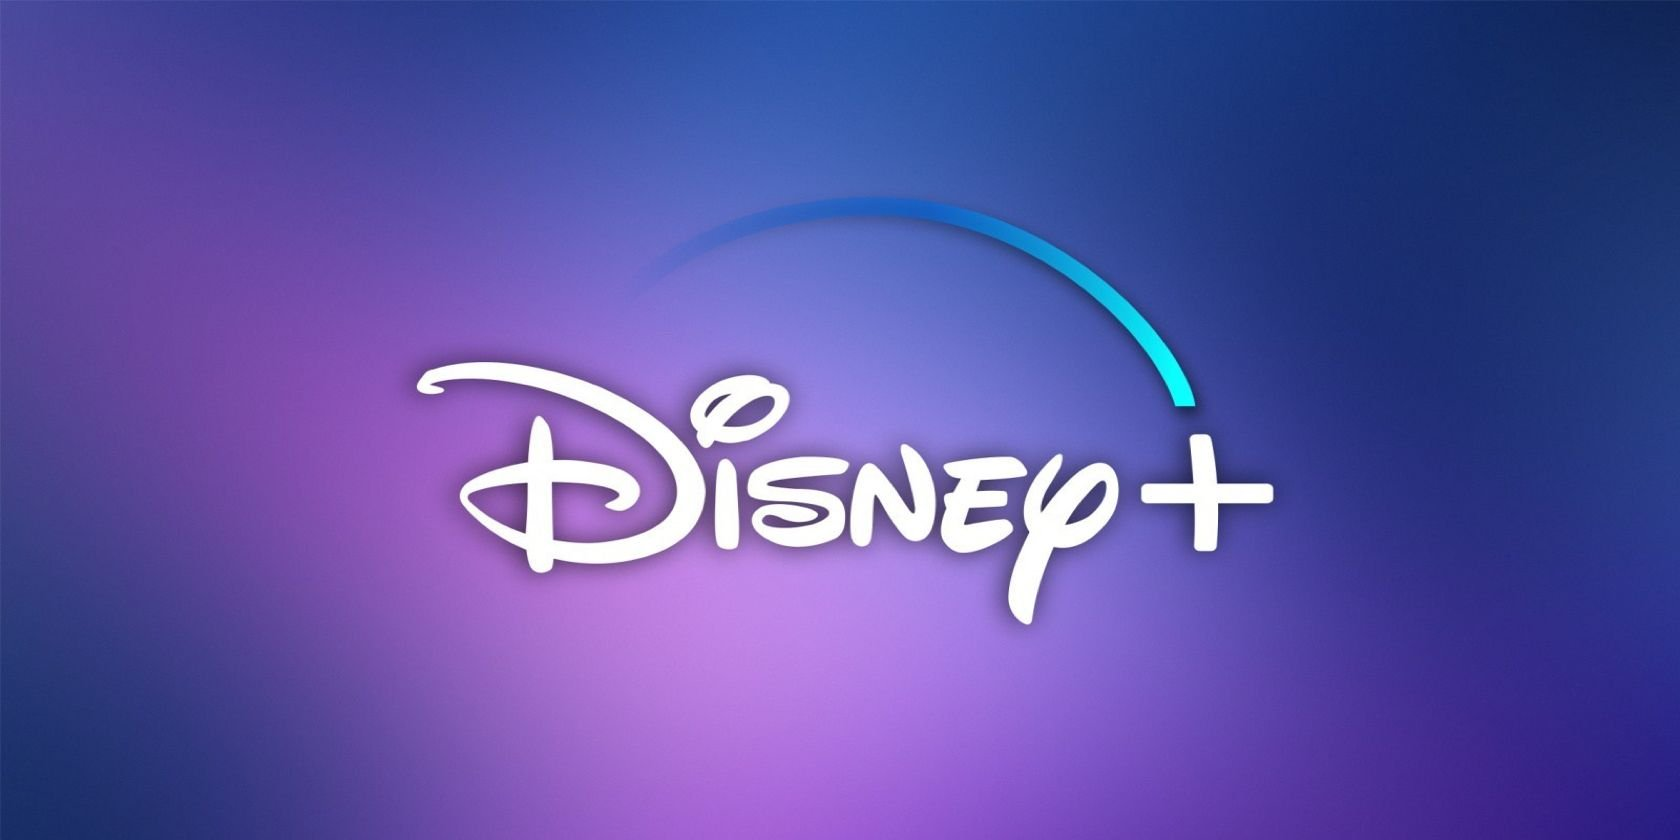 Disney+ Not Working? How to Fix Disney+ Issues